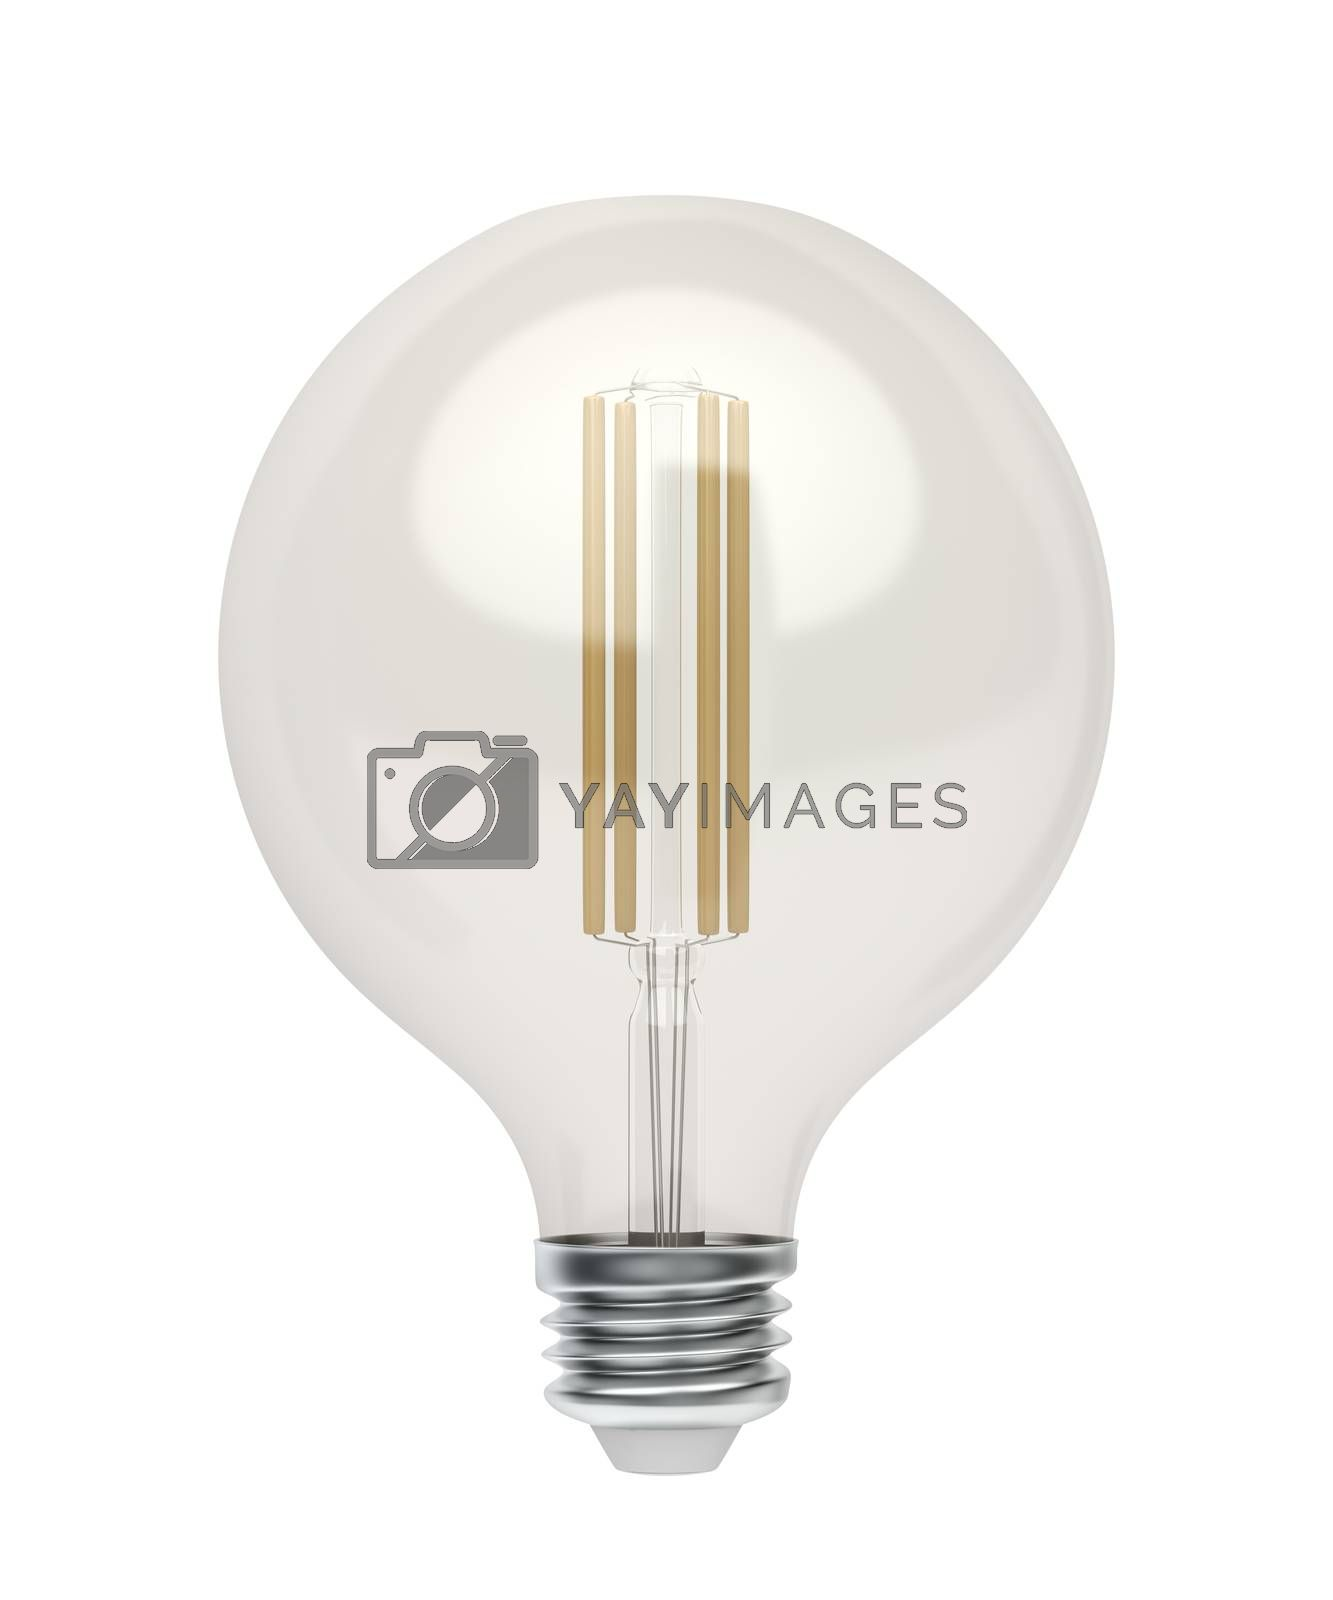 Decorative LED bulb isolated on white background